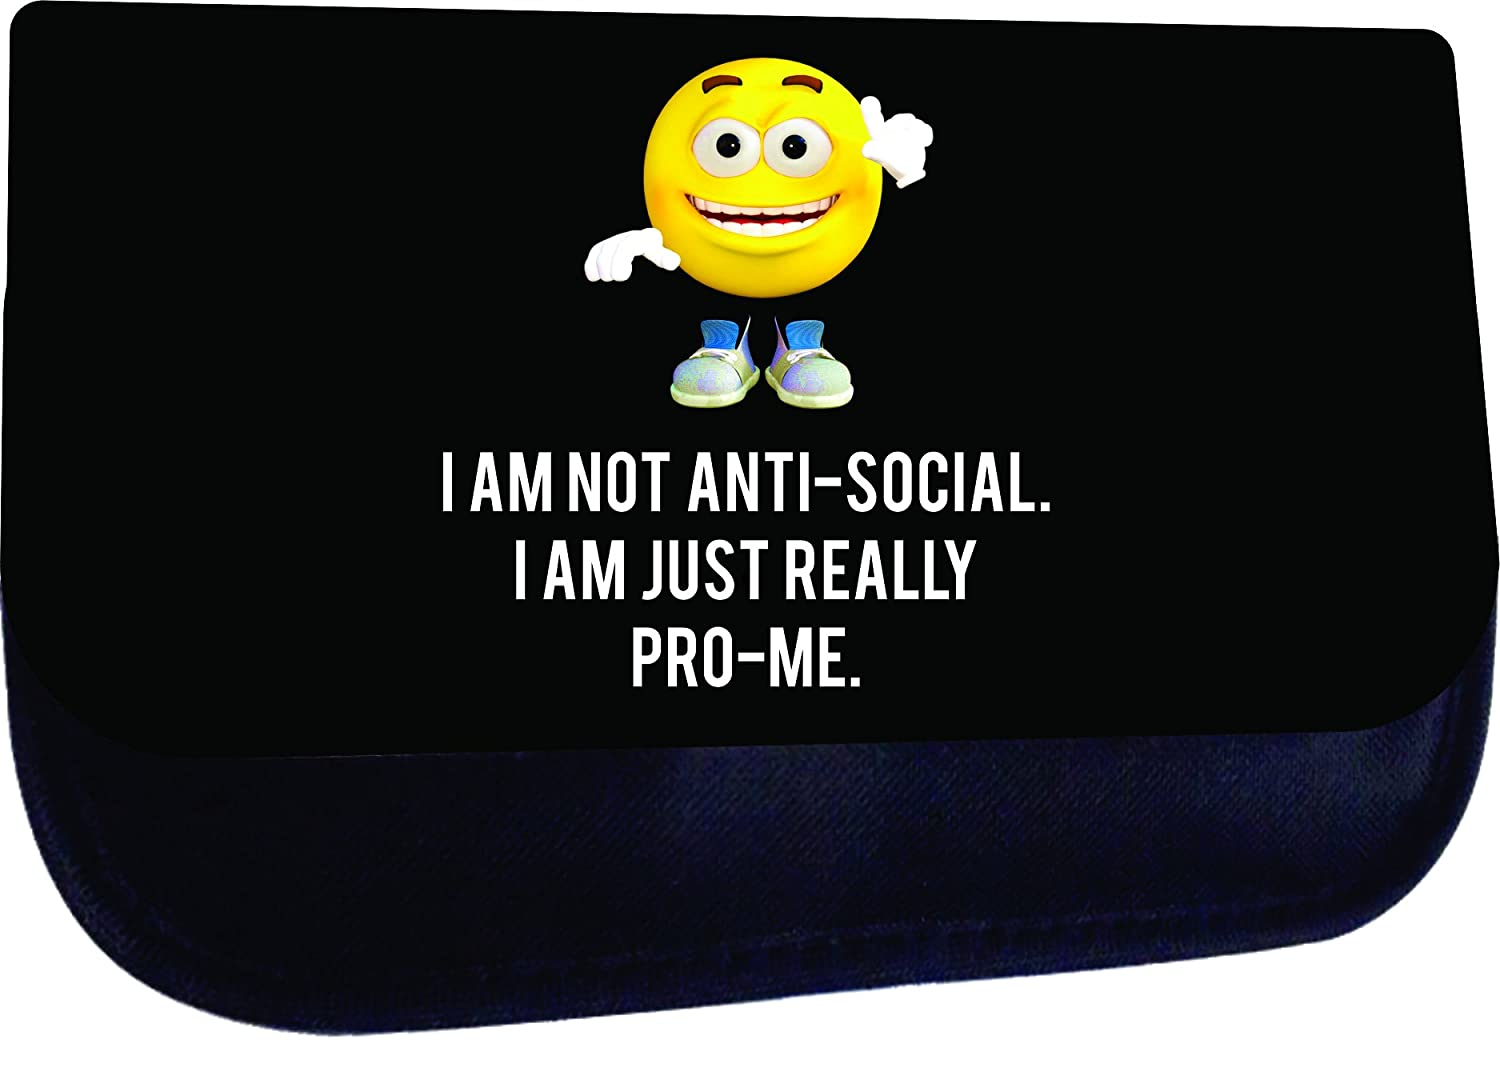 Cute Yellow Emoticon Pro Me Quote Elementary//Middle // High School Girls//Boys Large Black Multi-Purpose School Shoulder Messenger Bag and Pencil Case Set